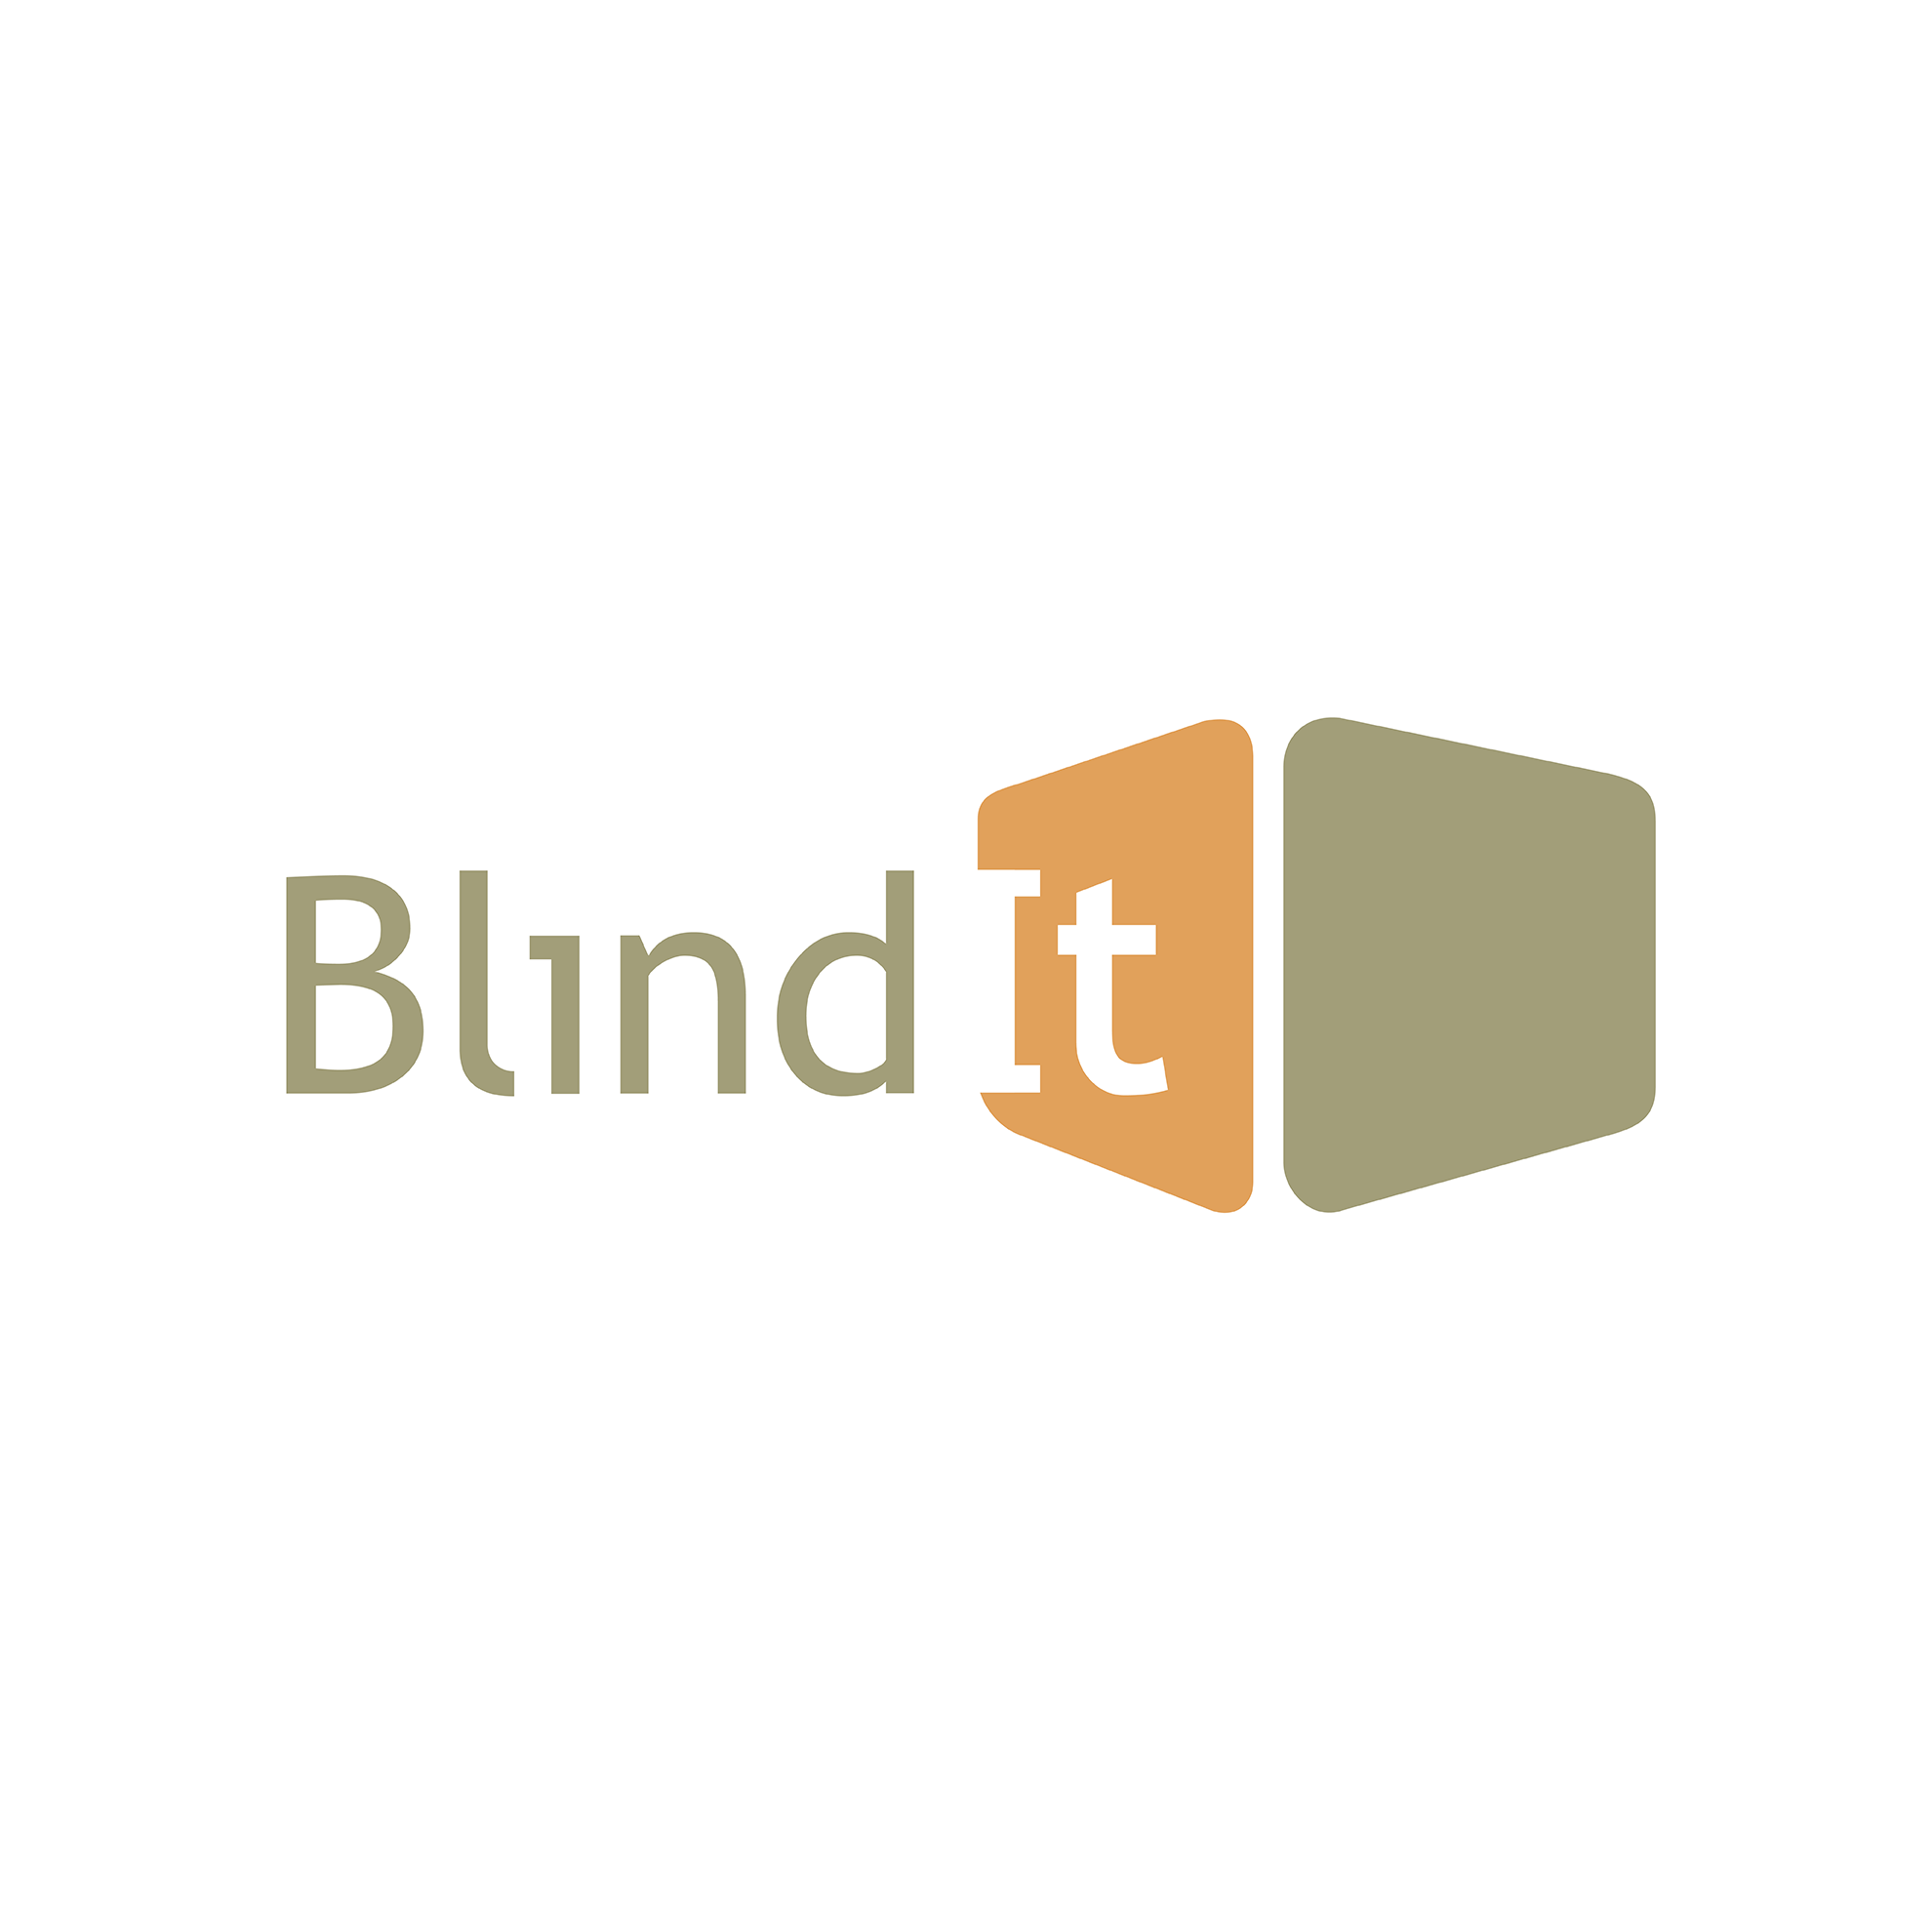 Blind It logo